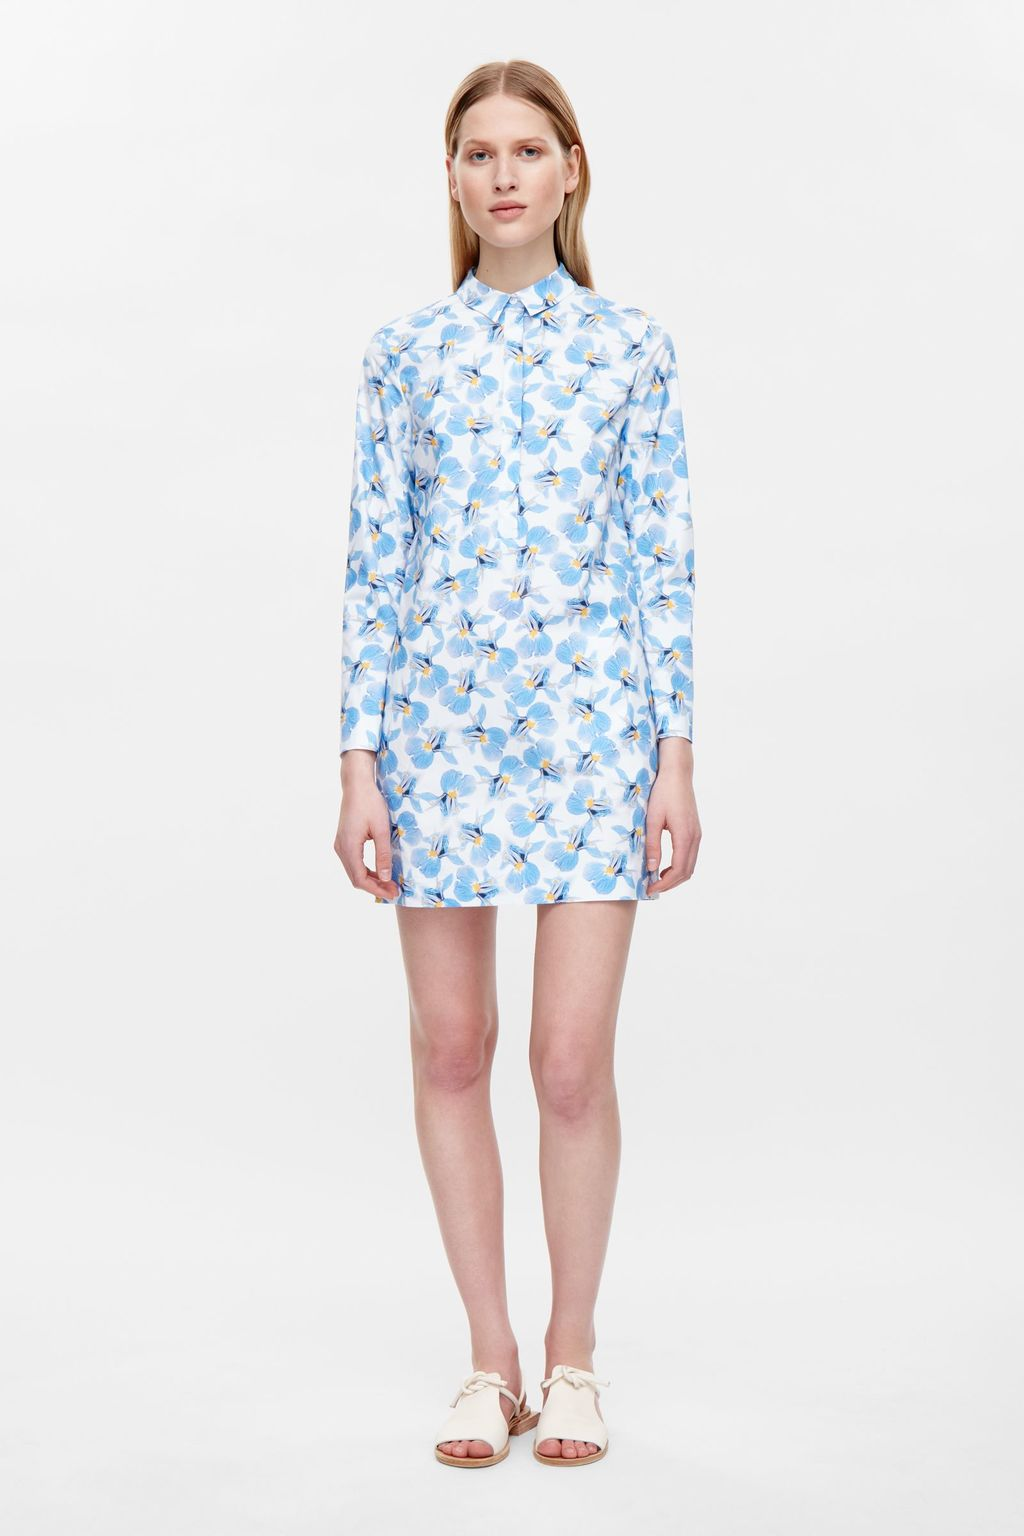 Floral Print Dress - style: shirt; length: mid thigh; neckline: shirt collar/peter pan/zip with opening; predominant colour: white; secondary colour: diva blue; occasions: casual; fit: body skimming; fibres: cotton - stretch; sleeve length: long sleeve; sleeve style: standard; texture group: cotton feel fabrics; pattern type: fabric; pattern: patterned/print; season: s/s 2016; wardrobe: highlight